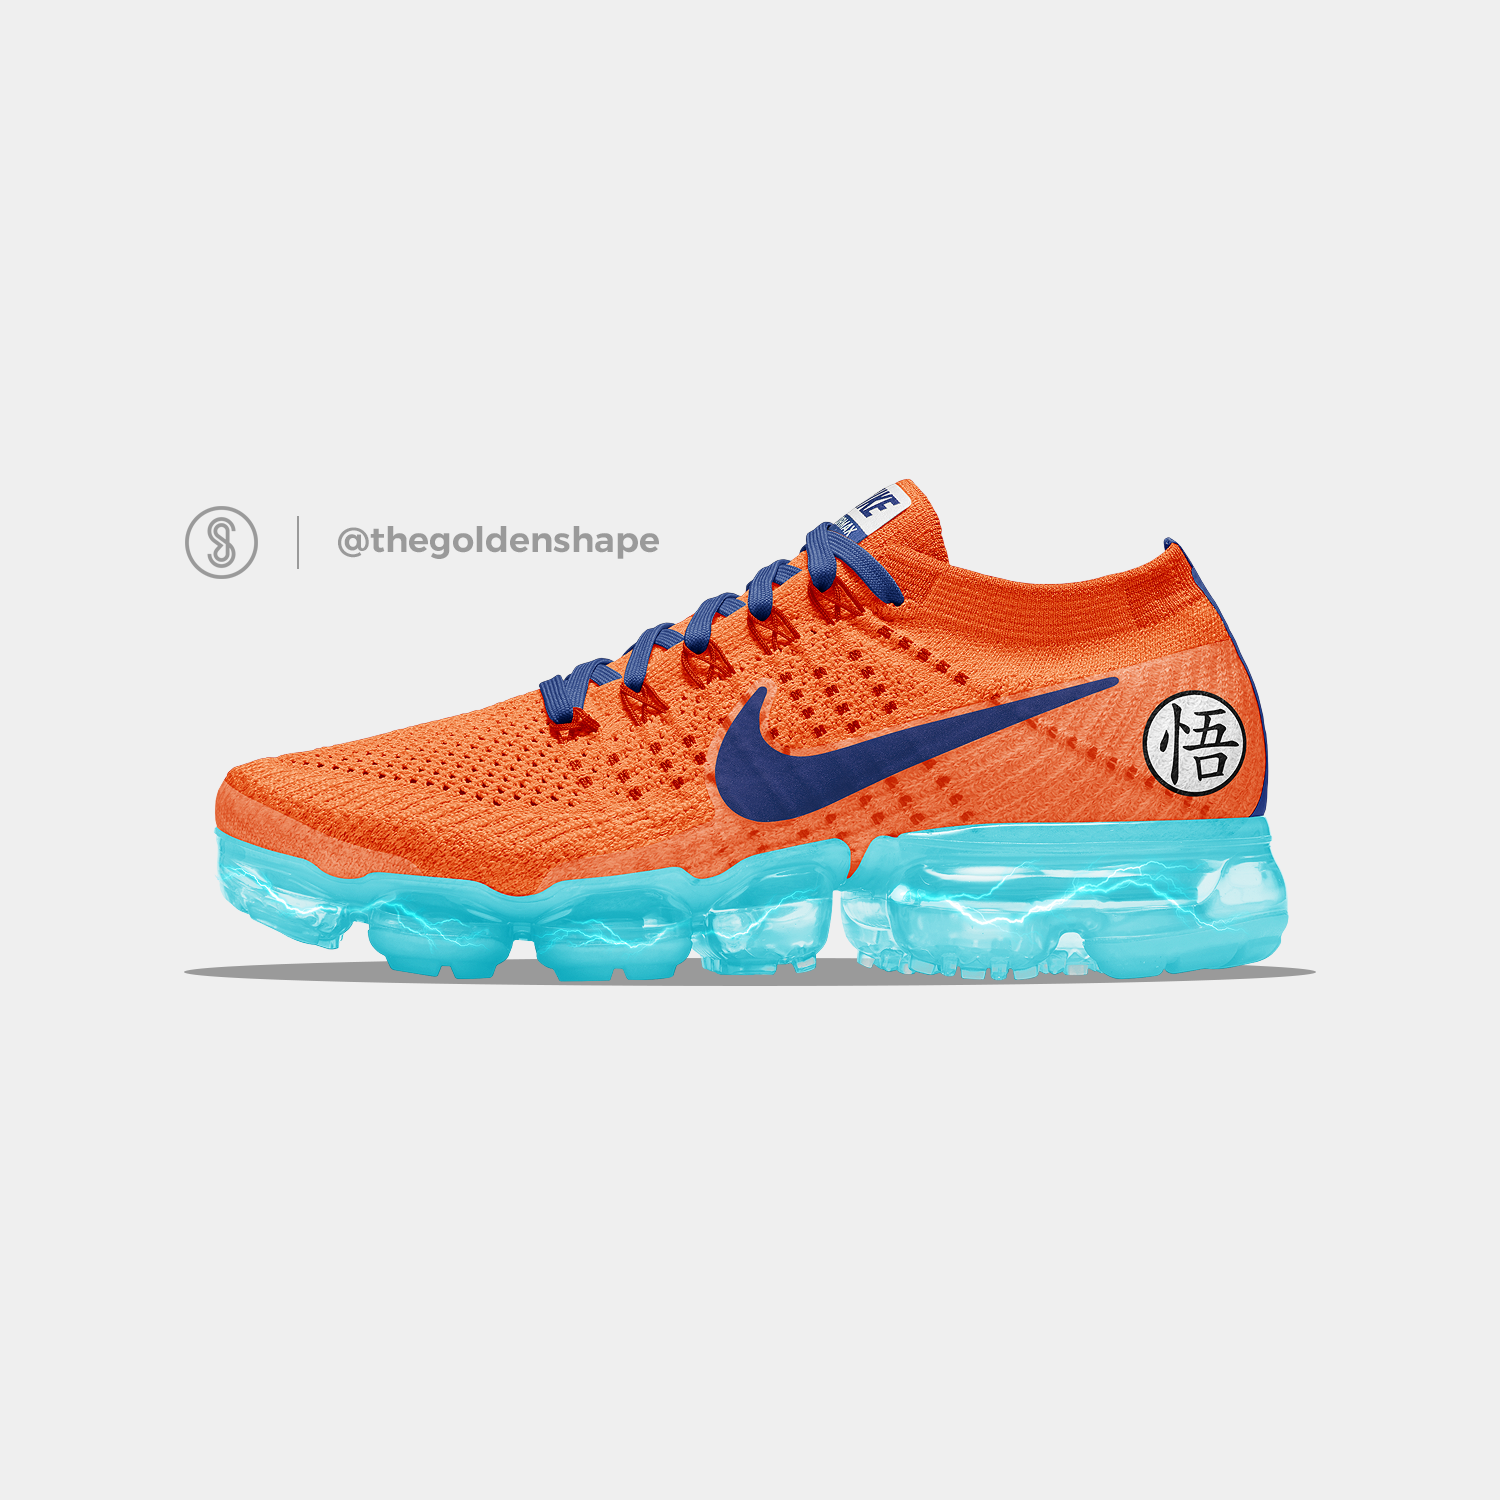 Ball Son Goku Dragon Saiyan X Super Vapormax Nike BlueThe Nn0wvm8O